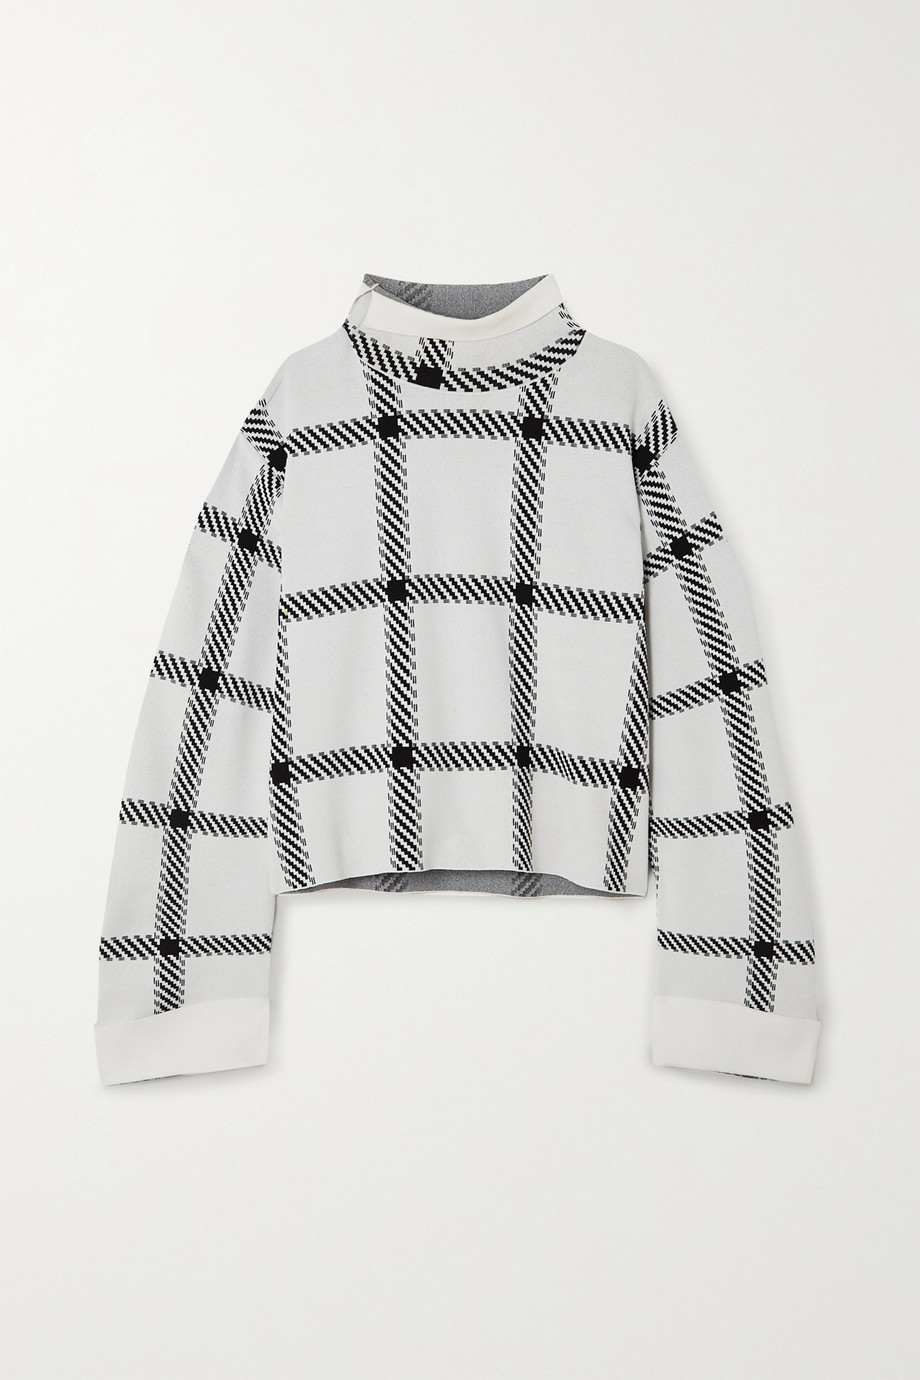 Stella McCartney + NET SUSTAIN checked stretch-knit top